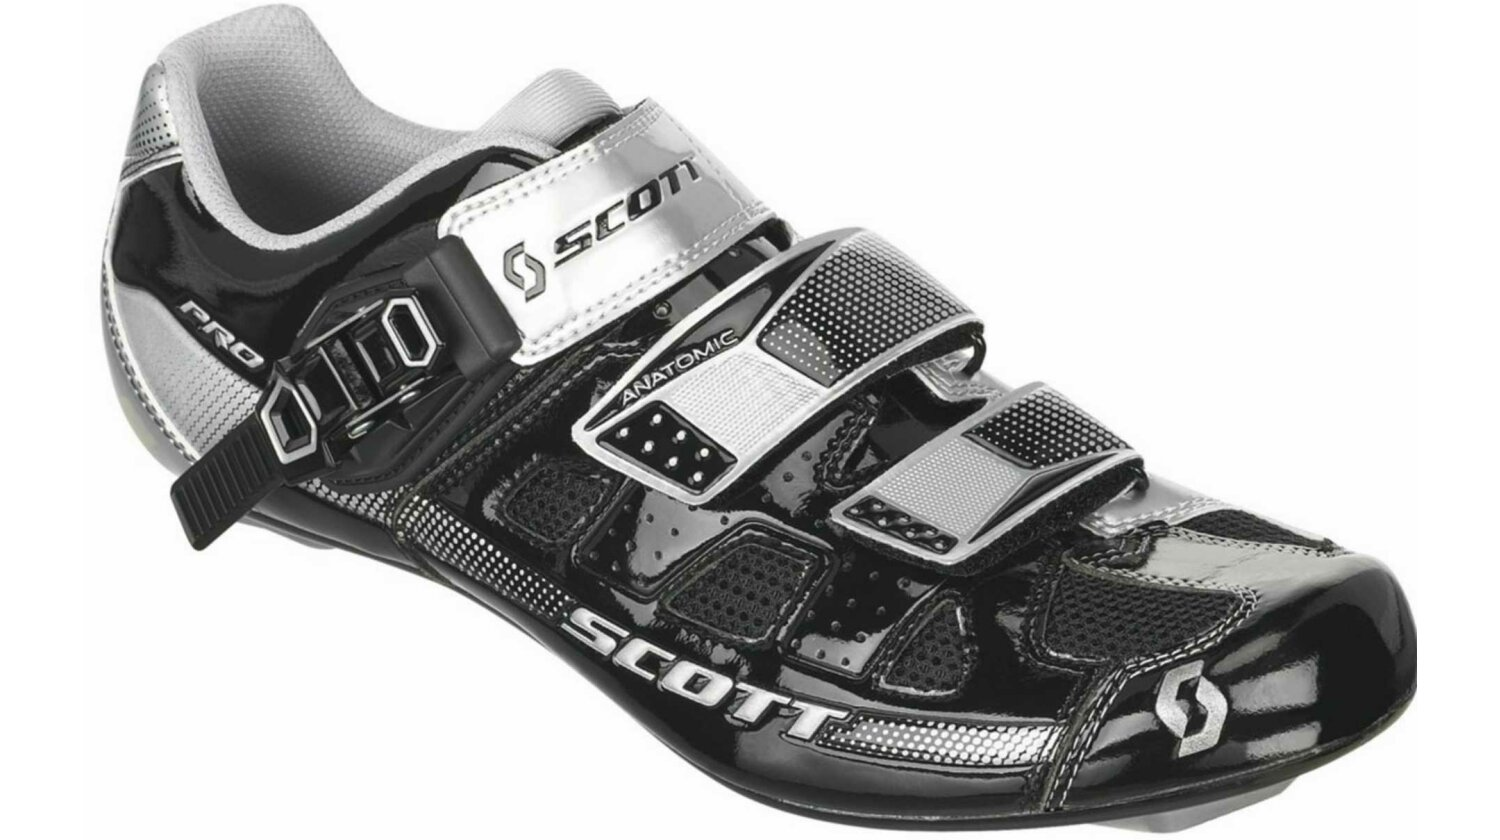 Scott Road Pro Schuh black/silver gloss